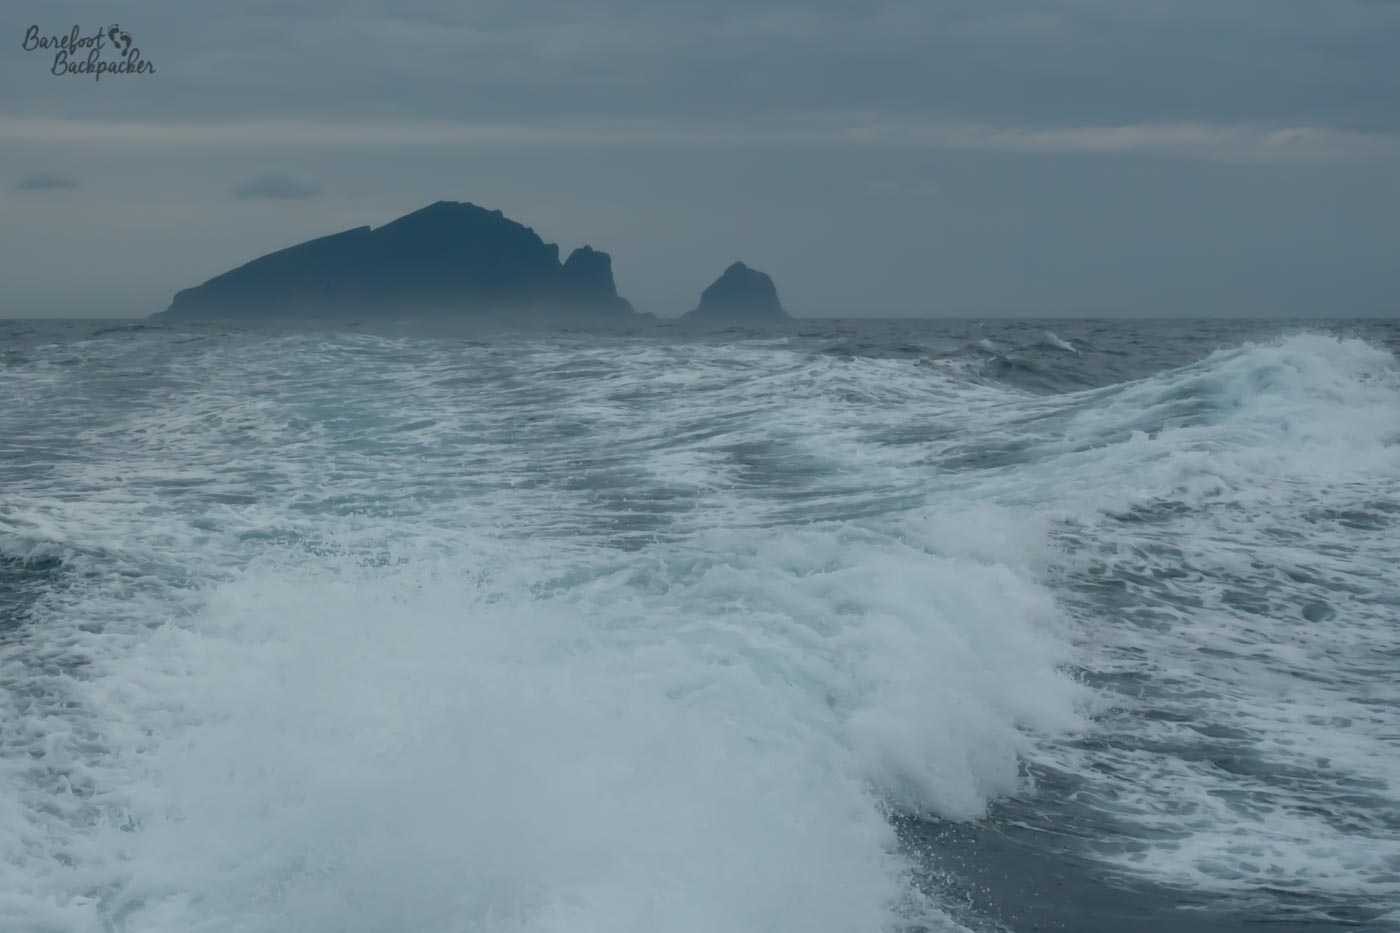 View of the rock stacks around St Kilda from the boat. There's a fair amount of spray in the sea and the sky is quite grey – it was a very windy and wet day.